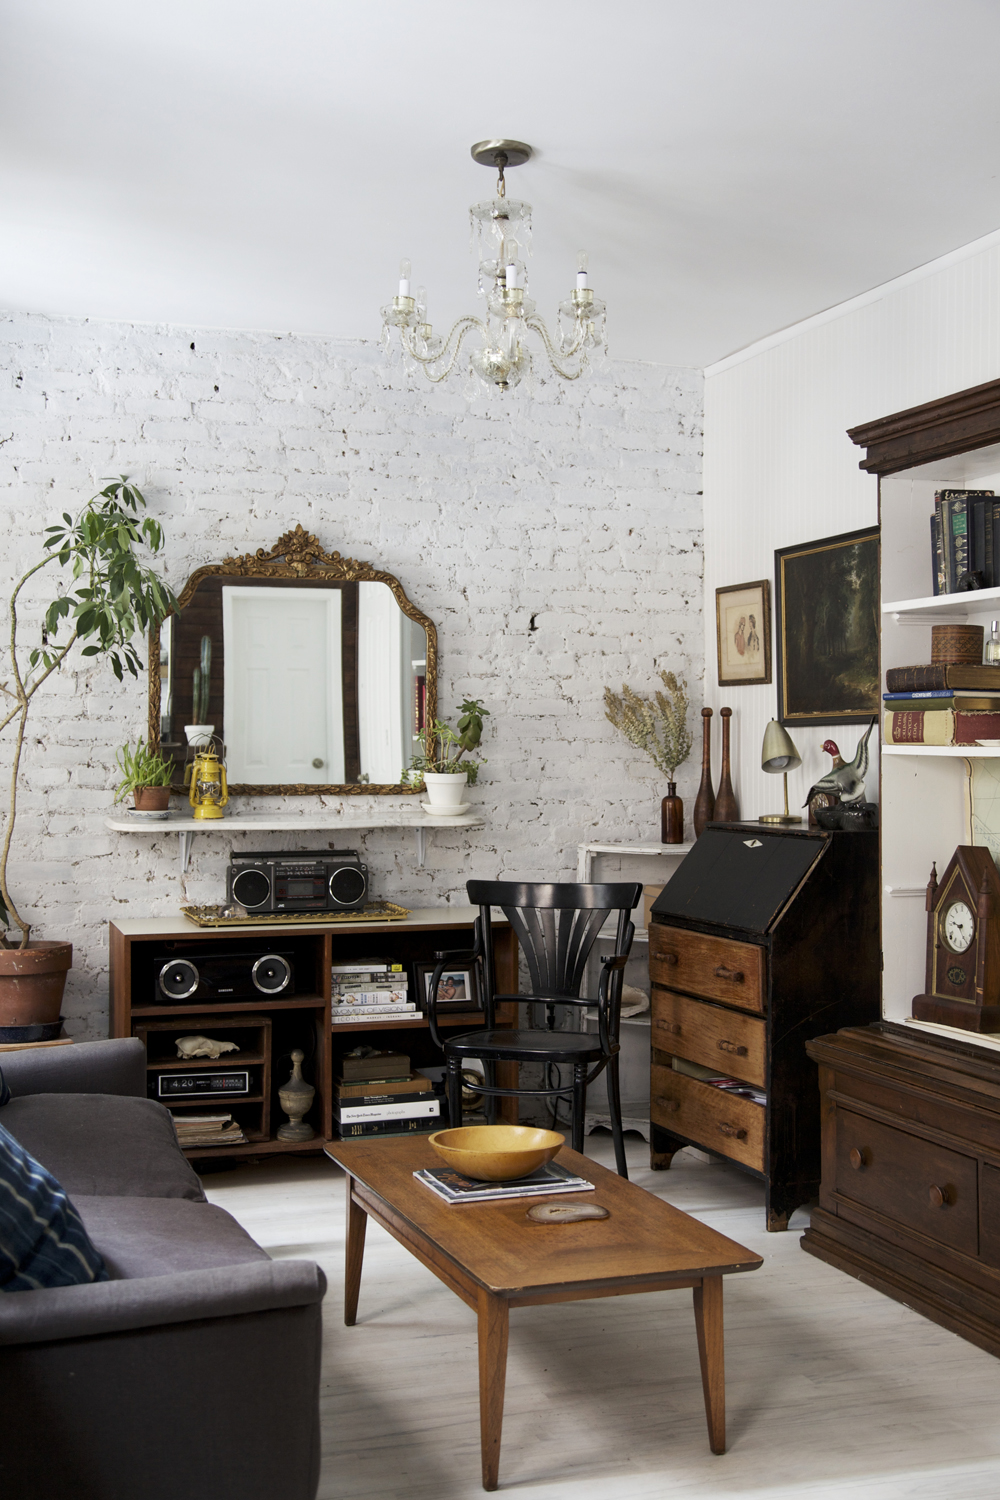 Anthony D'Argenzio's East Village Home